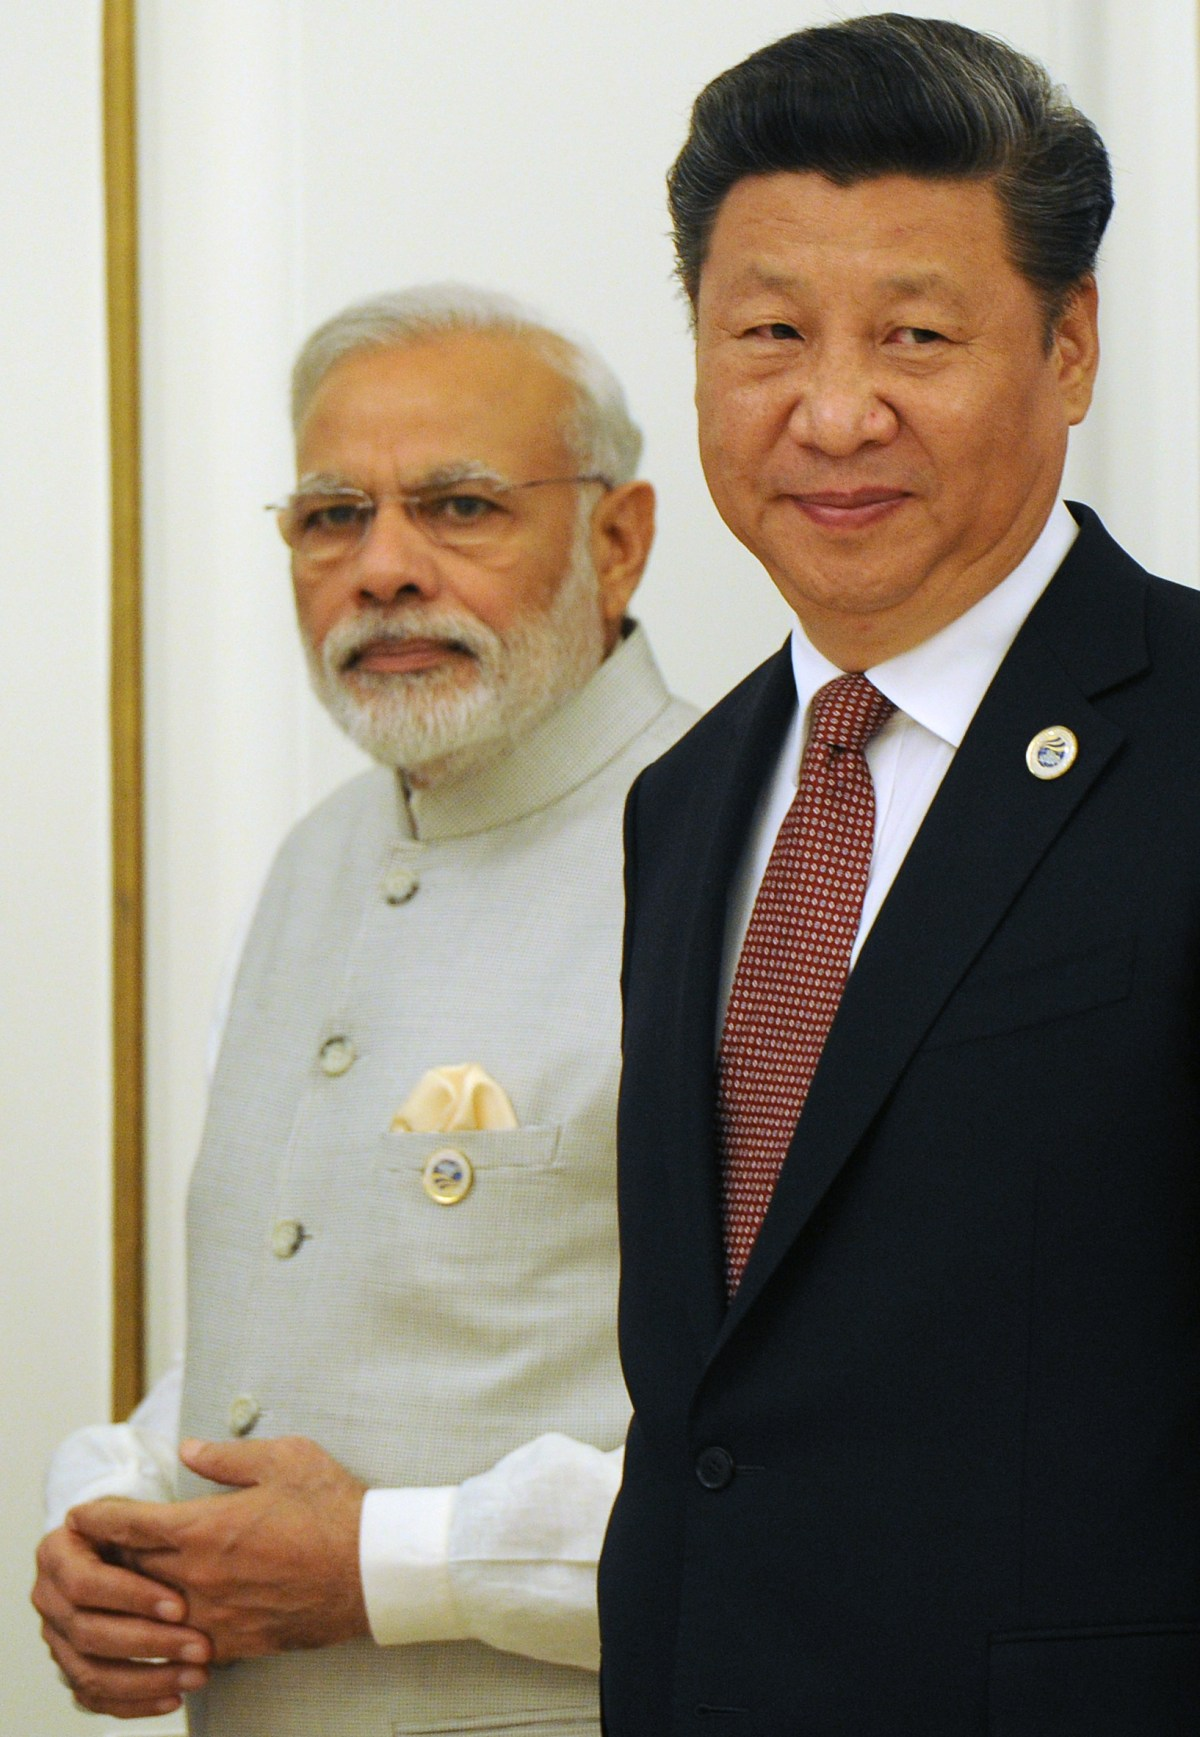 Indian Prime Minister Narendra Modi( left) and China's President Xi Jinping are seen at a meeting in Tashkent last year. Photo: AFP/ Michael Klimentyev / Sputnik